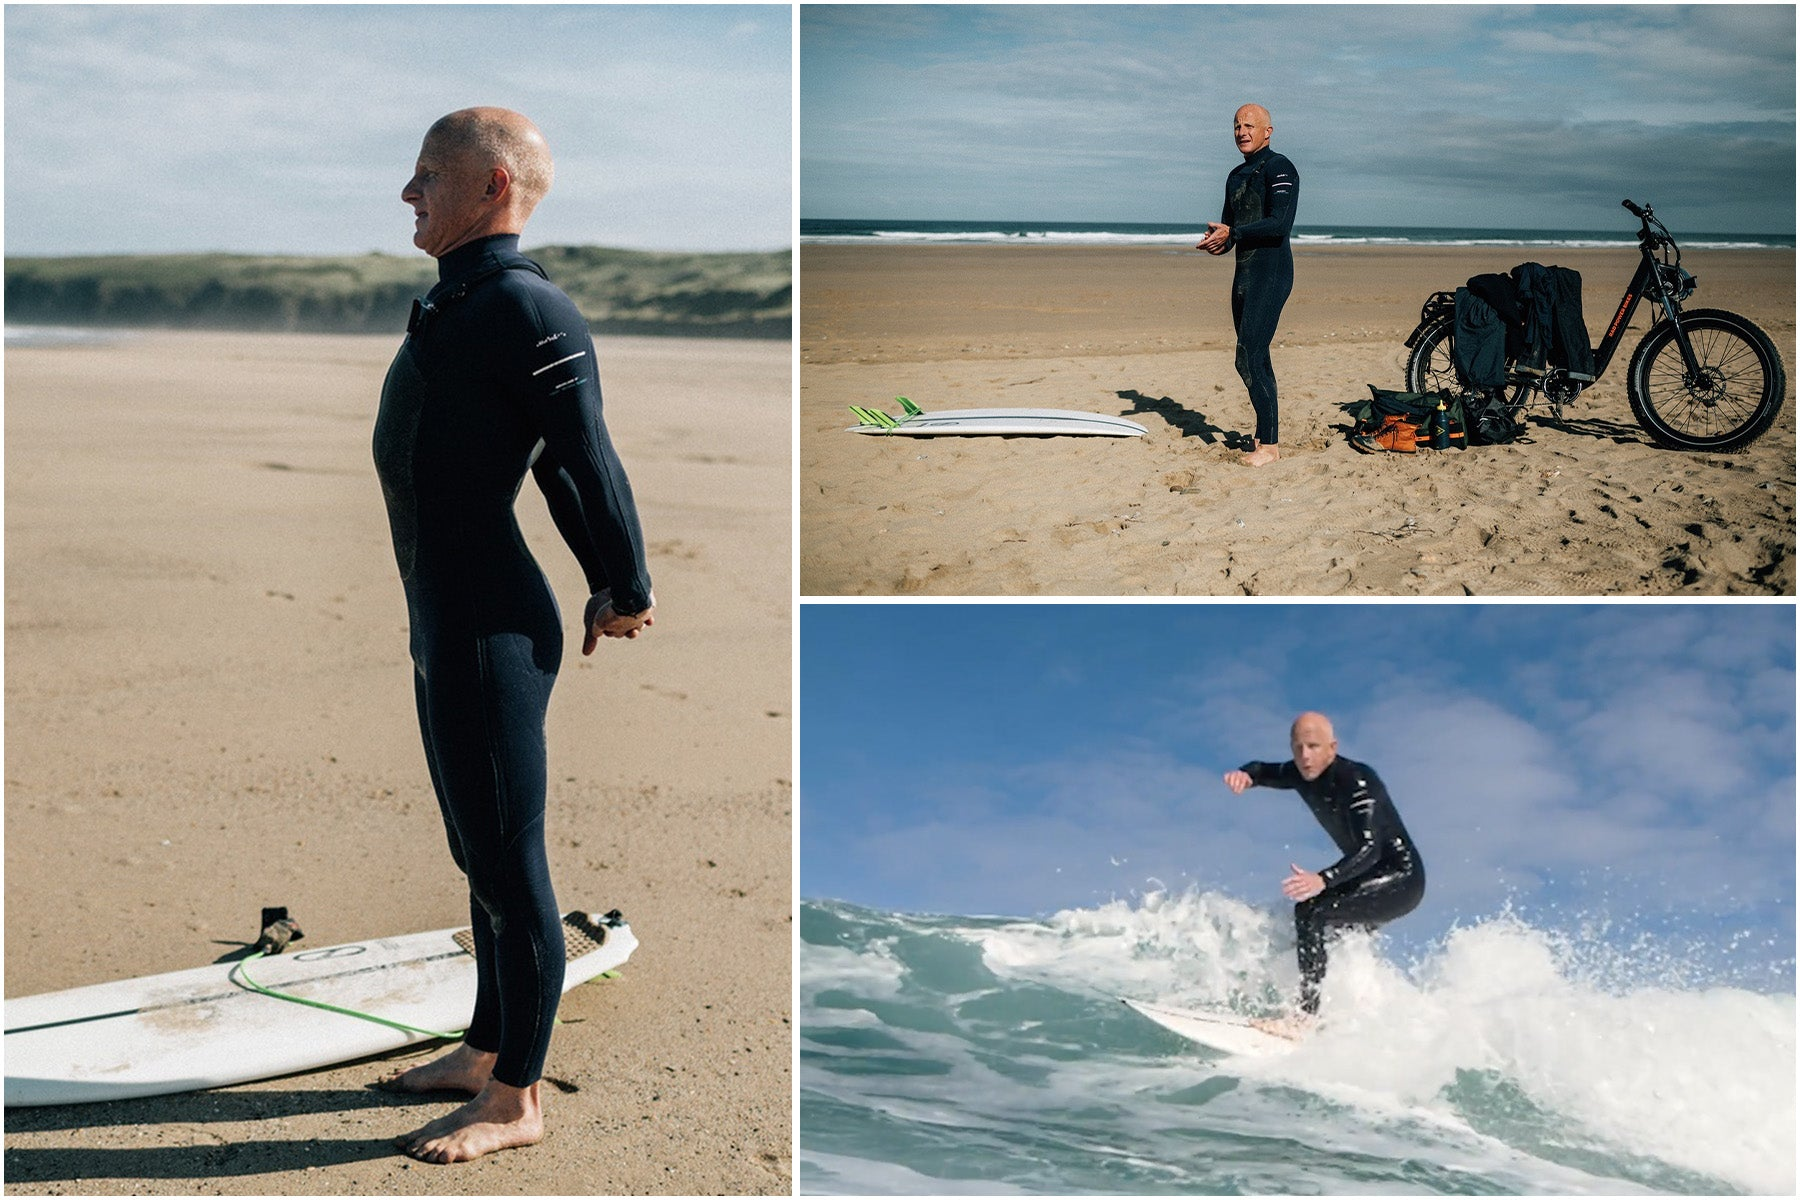 Tom Kay surfing after a solo morning cycle to the beach